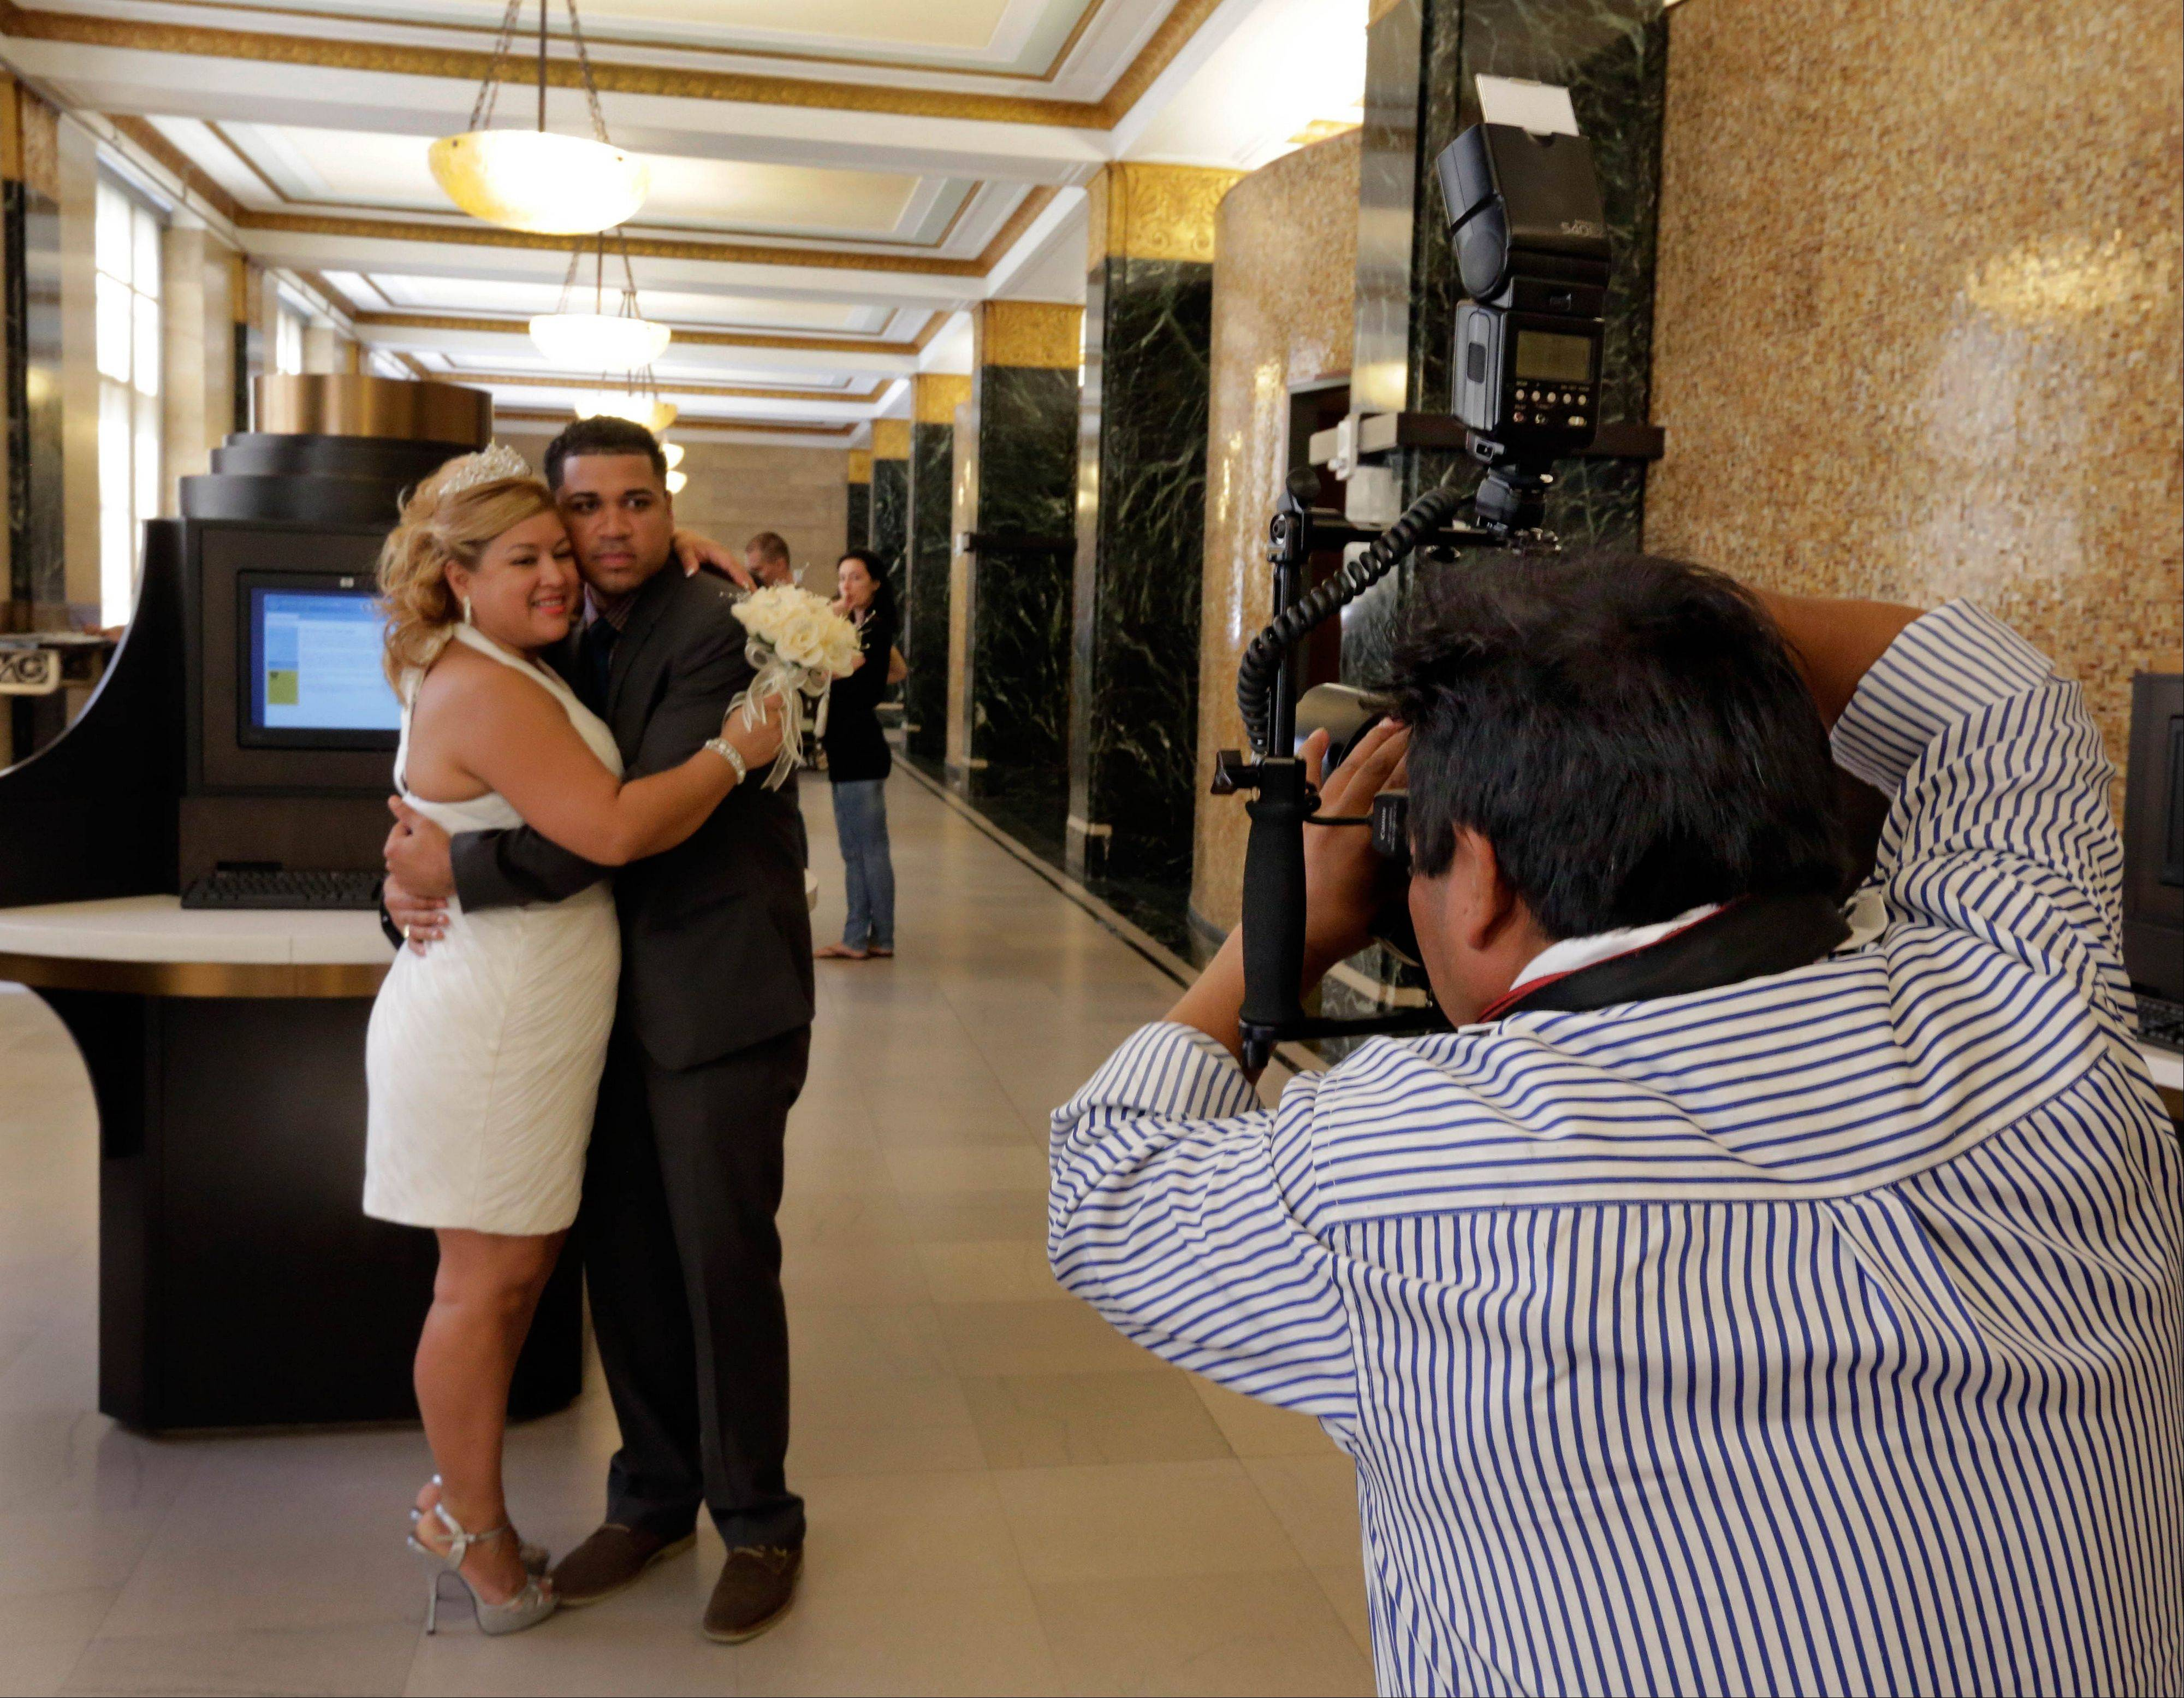 Wedding photographer Braulio Cuenca poses groom Jorge Mejia and bride Irma Aguilar, of the Bronx borough of New York, before their ceremony in New York�s Office of the City Clerk.